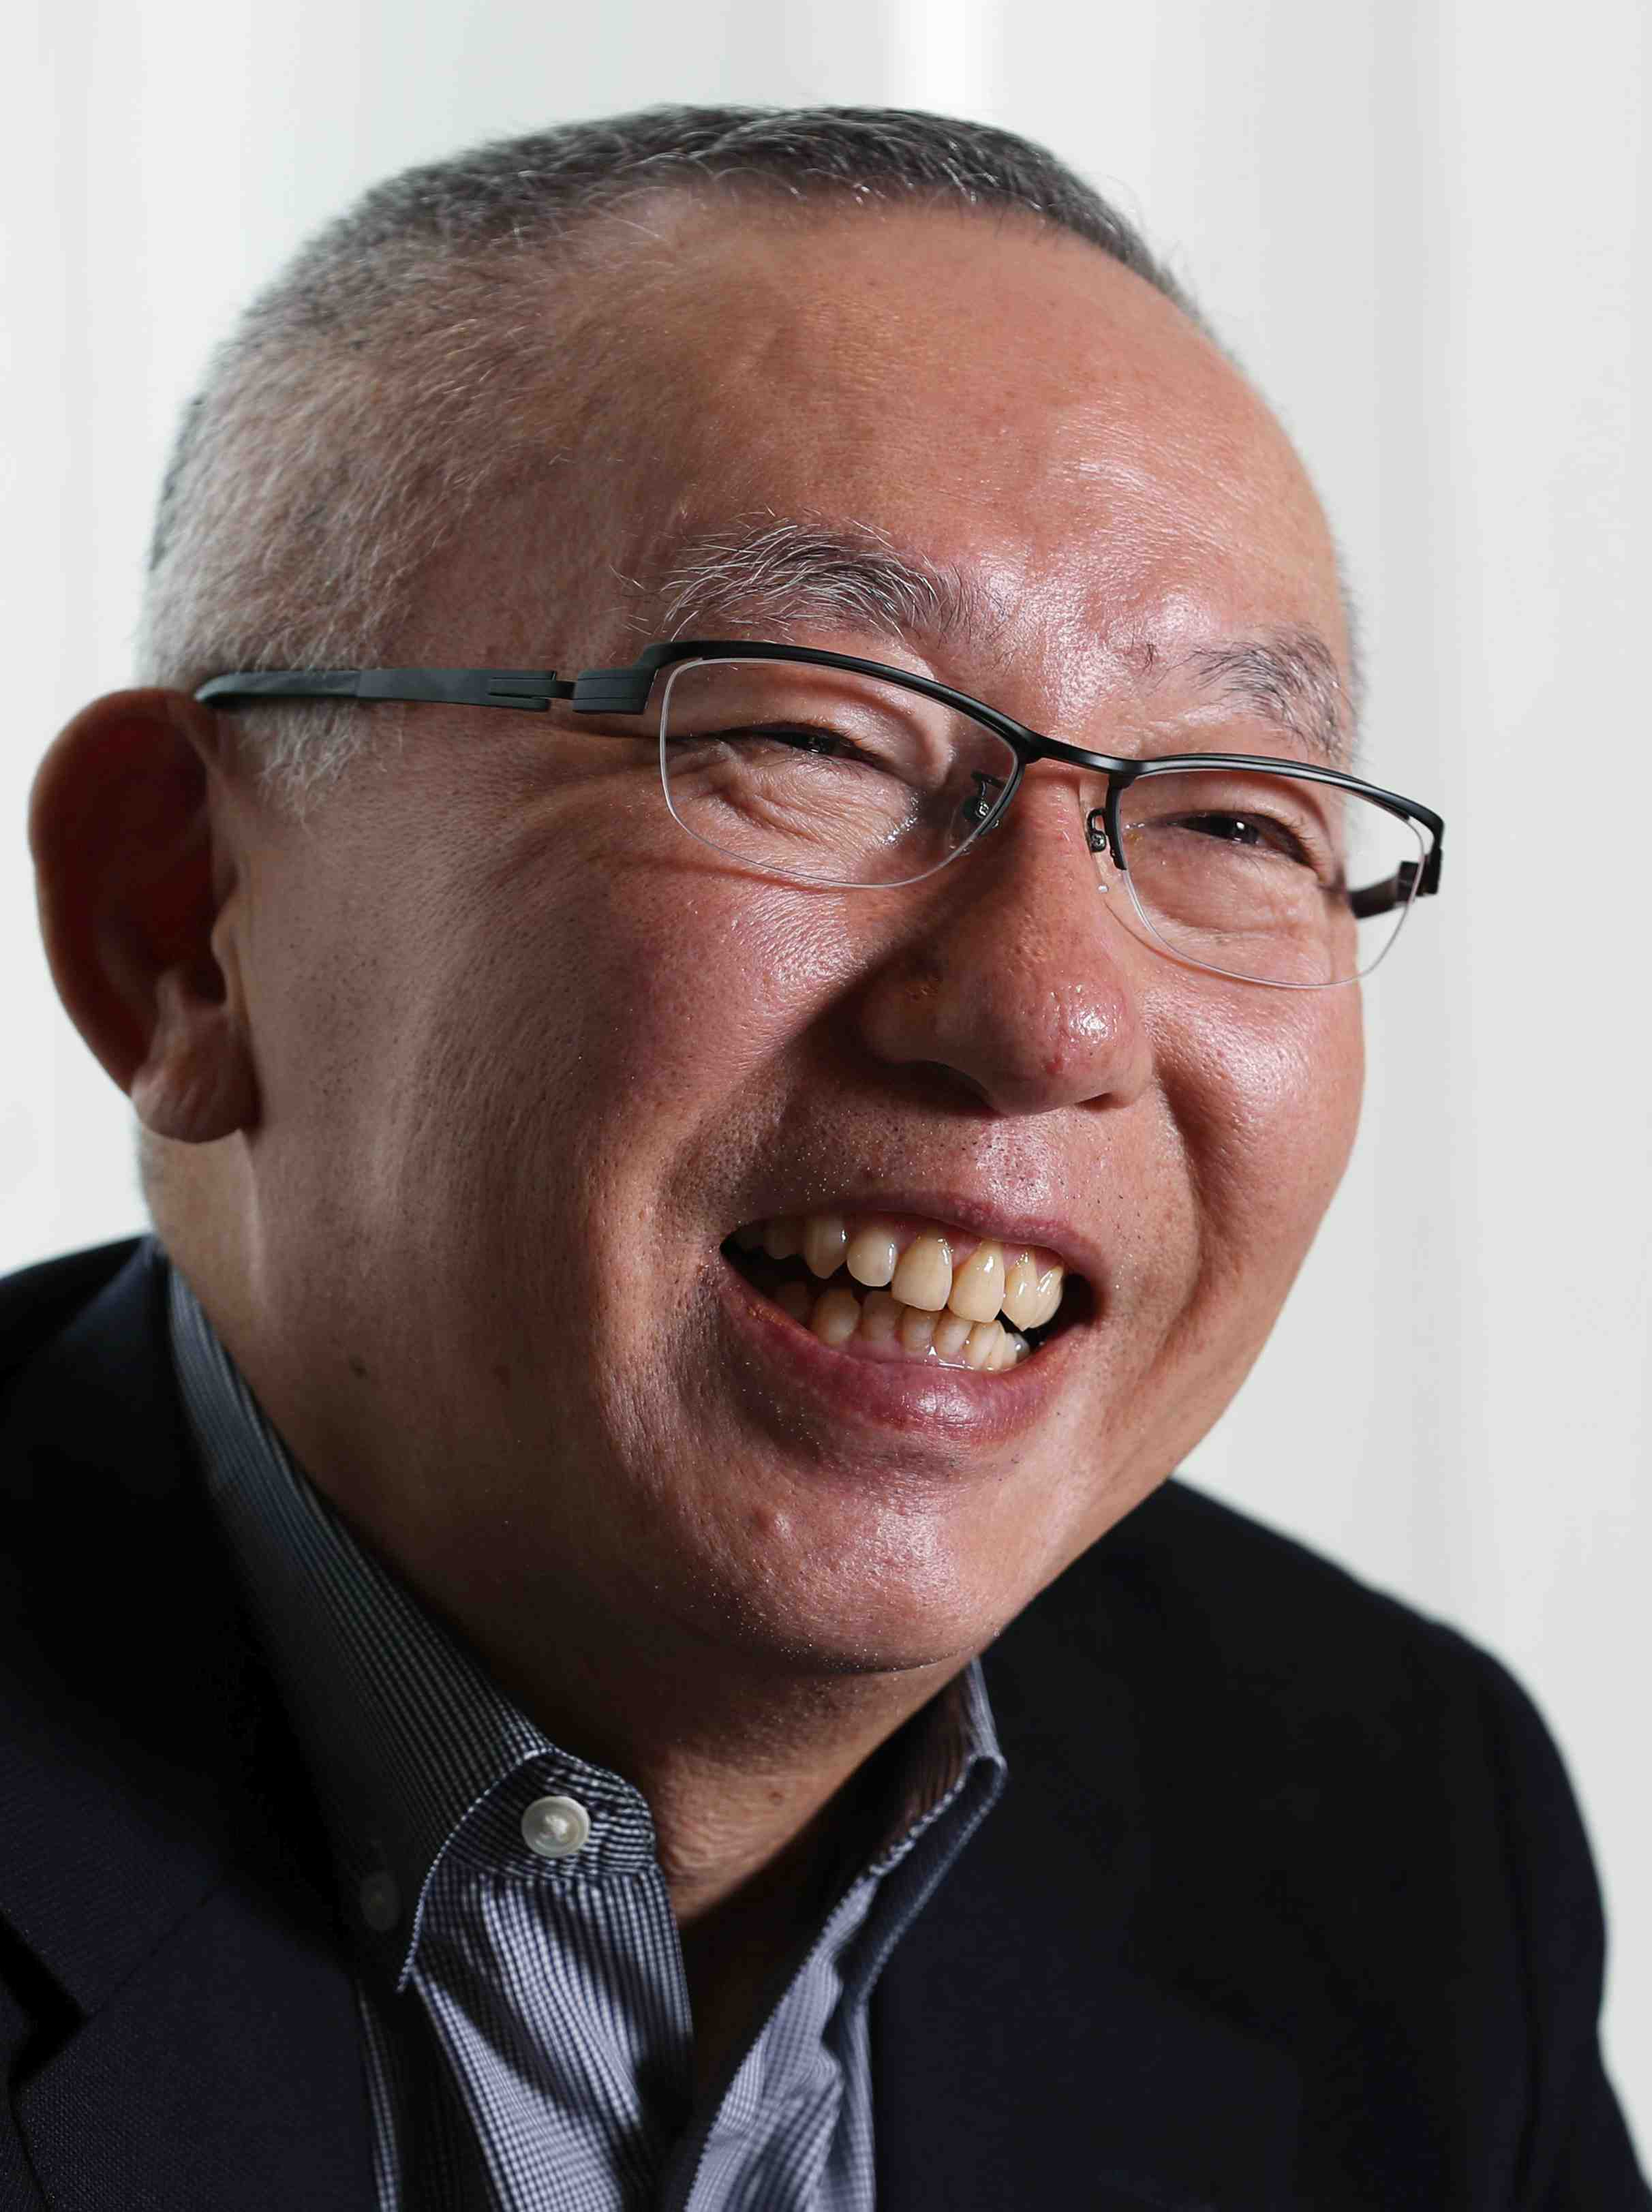 Interview with Tadashi Yanai UNIQLO Founder